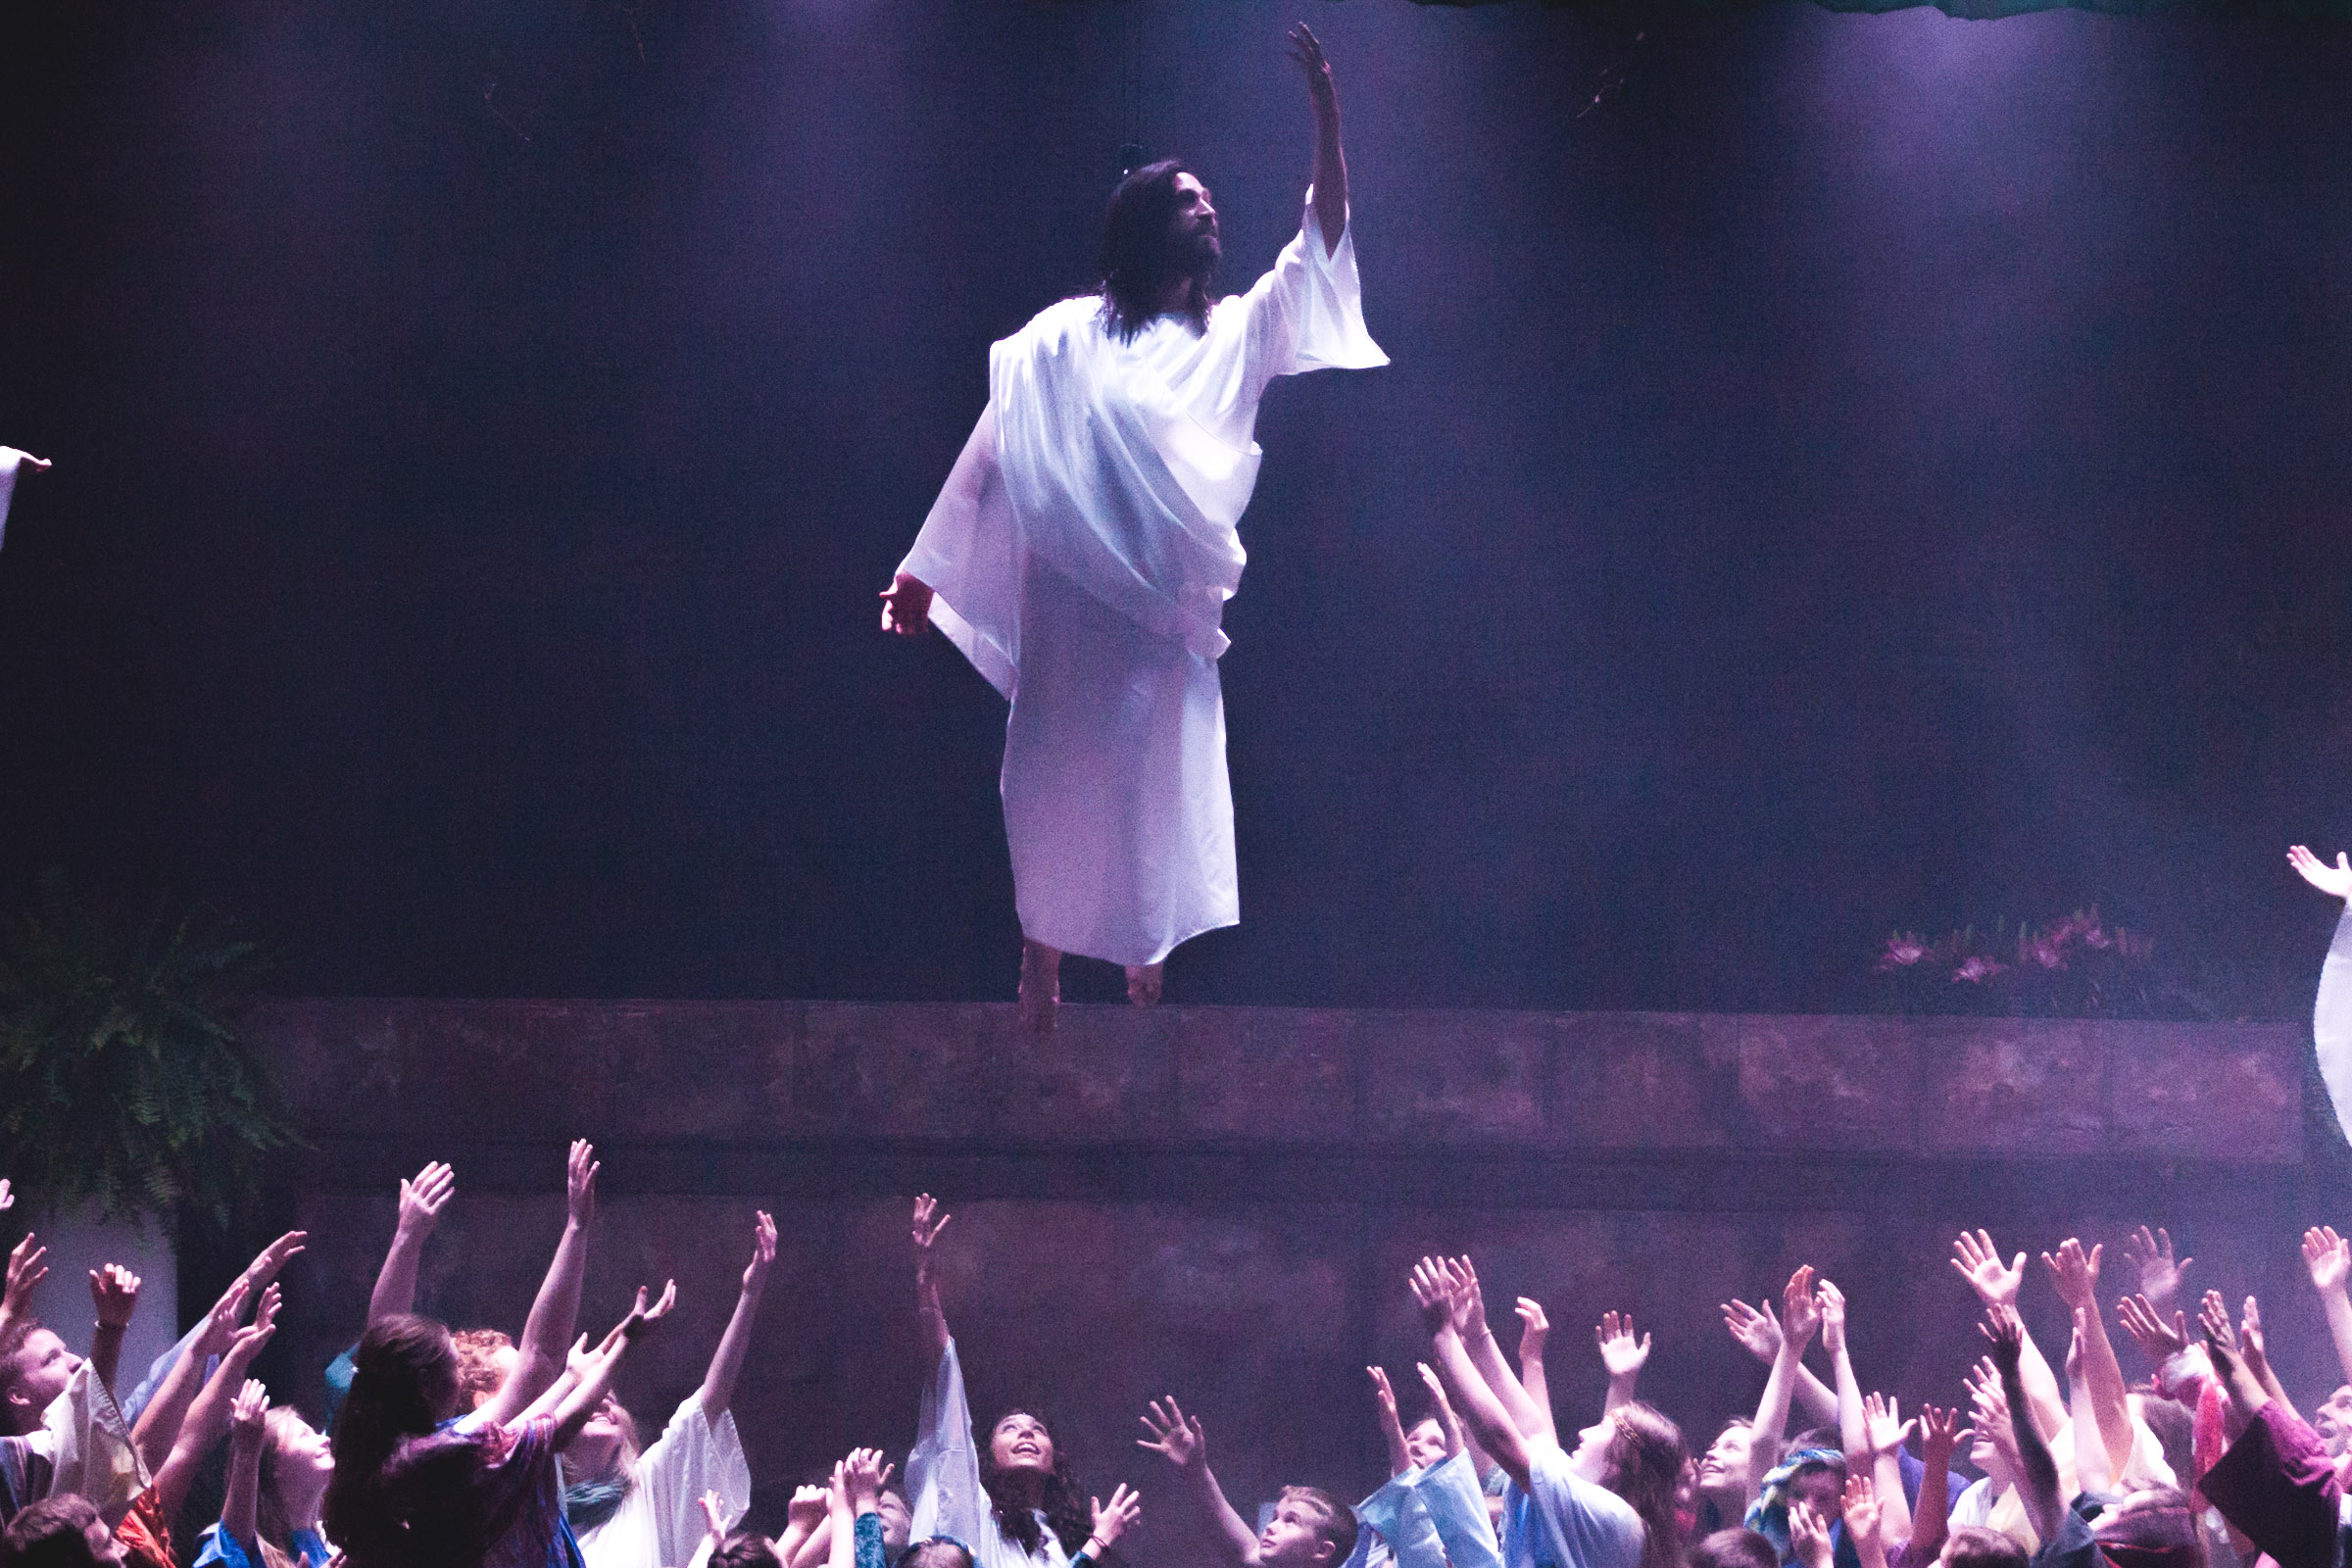 Jesus is lifted off the stage as believers raise their hands